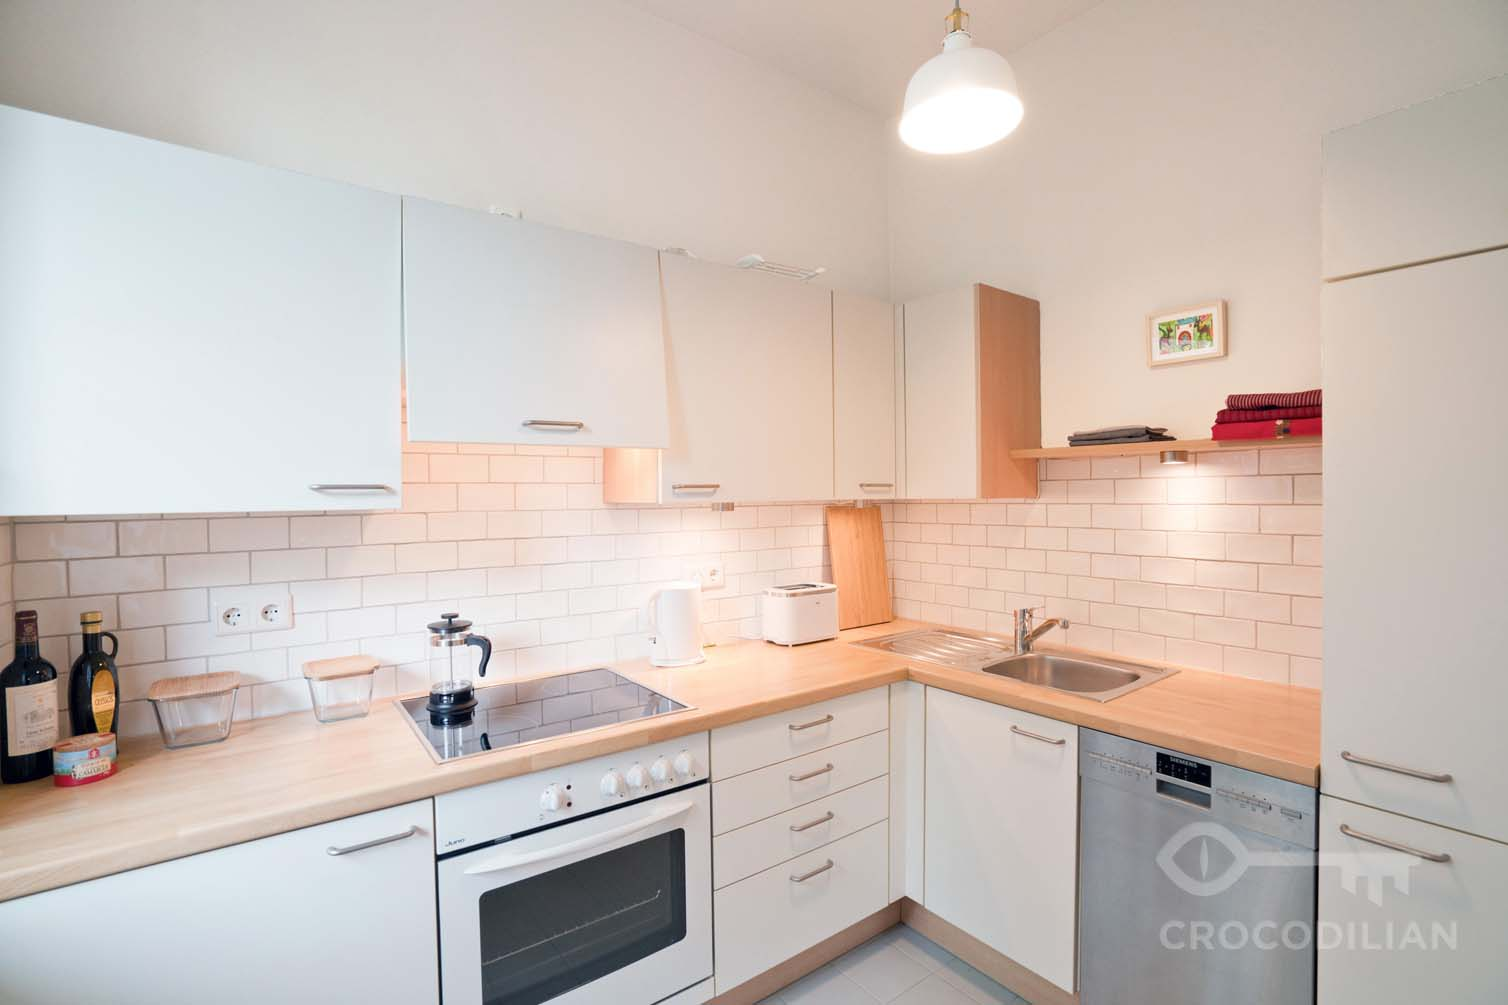 Central Living: 2-Room Apartment in Top Location with Balcony, near Arkonaplatz.